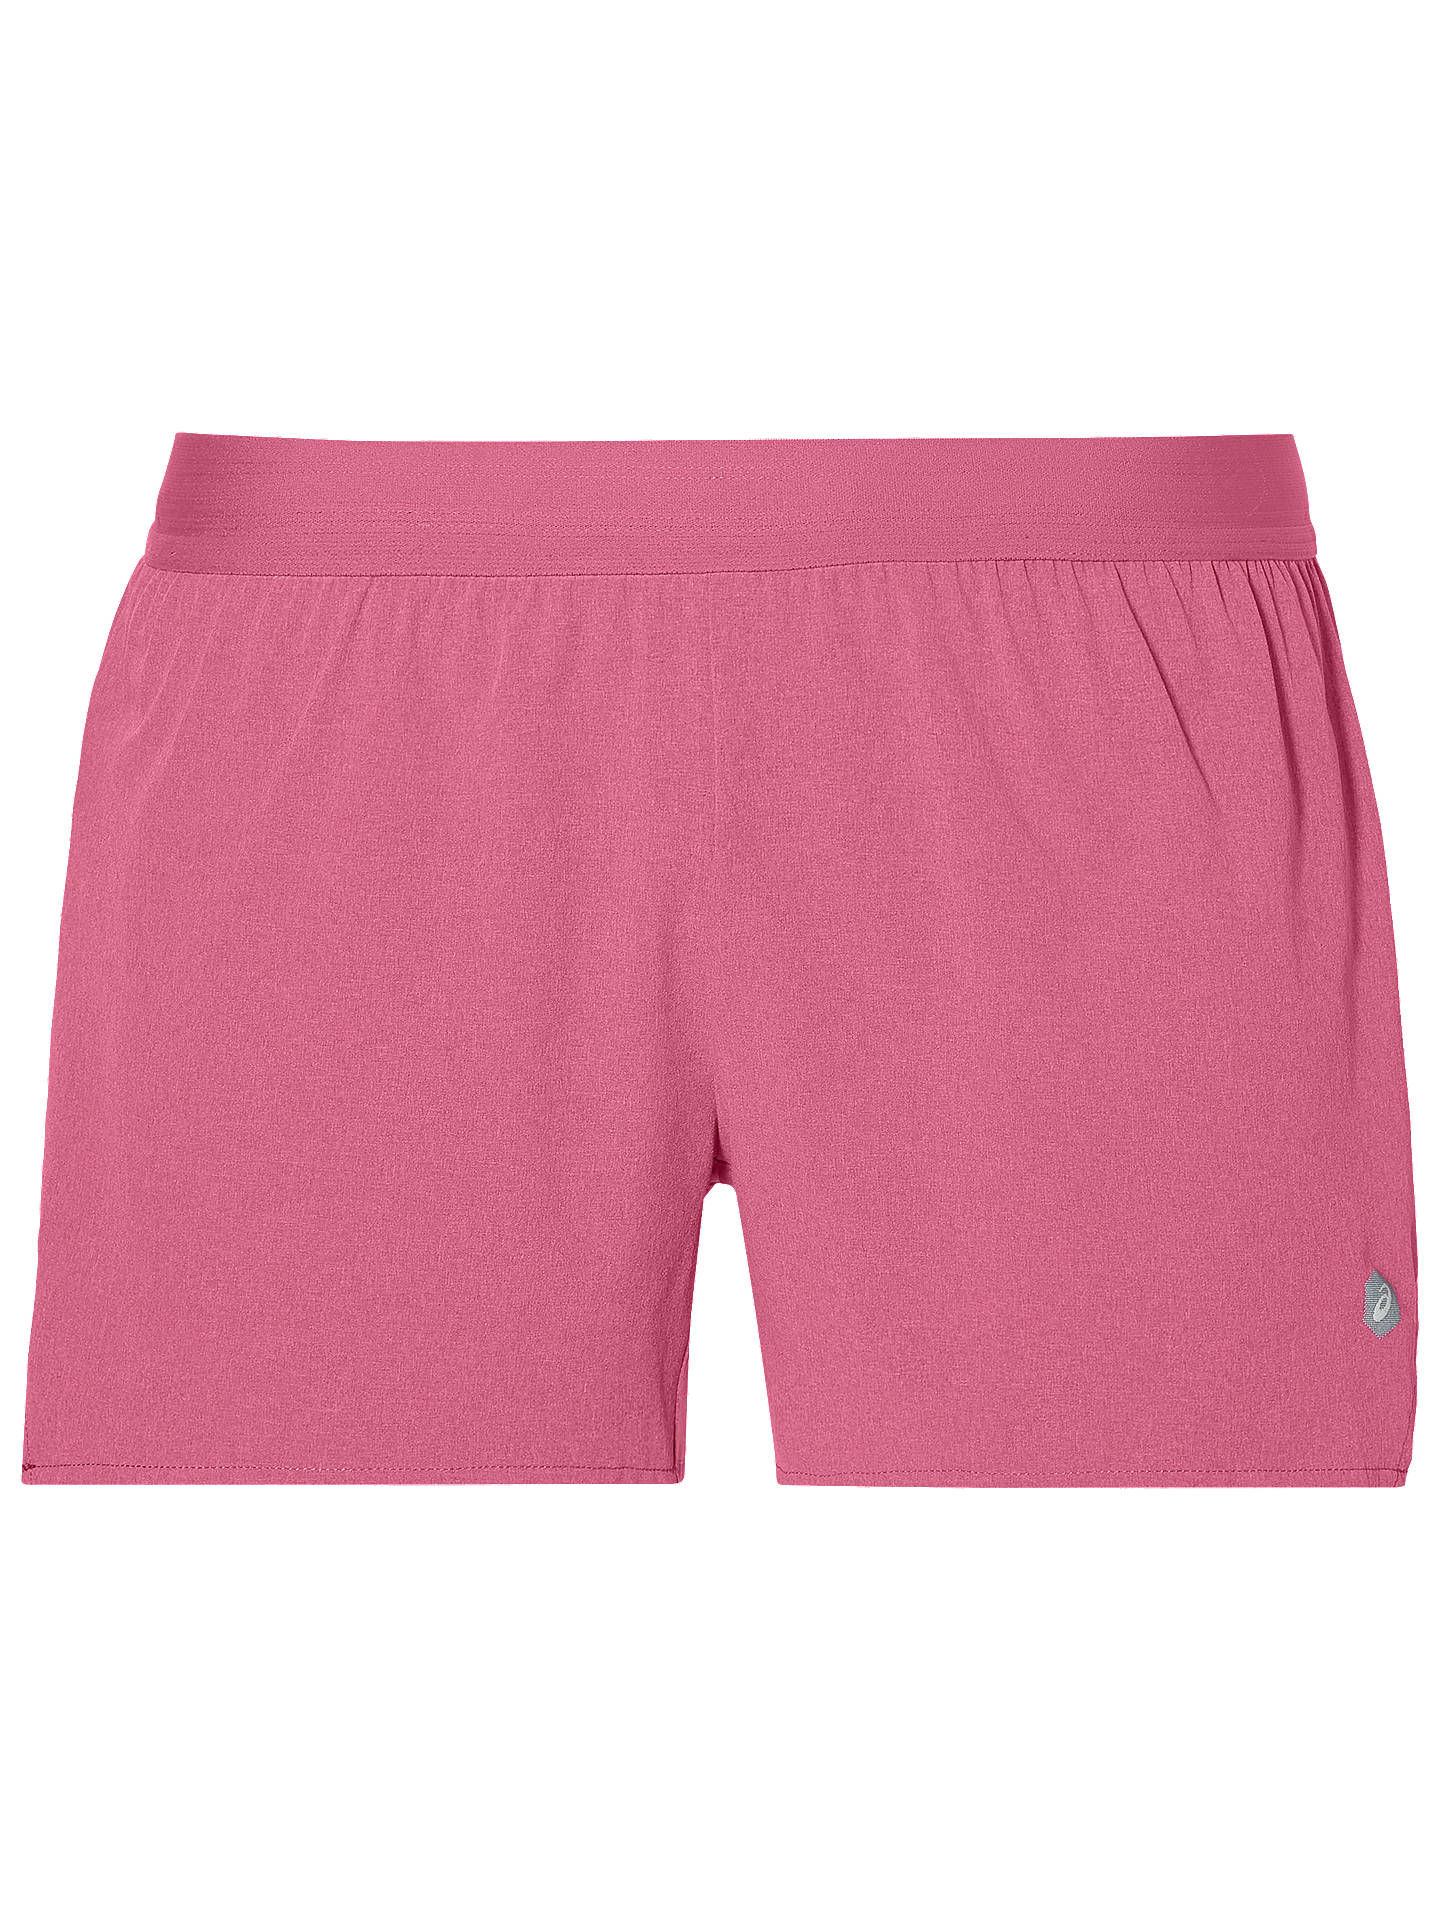 Buy ASICS 2-in-1 Running Shorts, Pixel Pink Heather, S Online at johnlewis.com